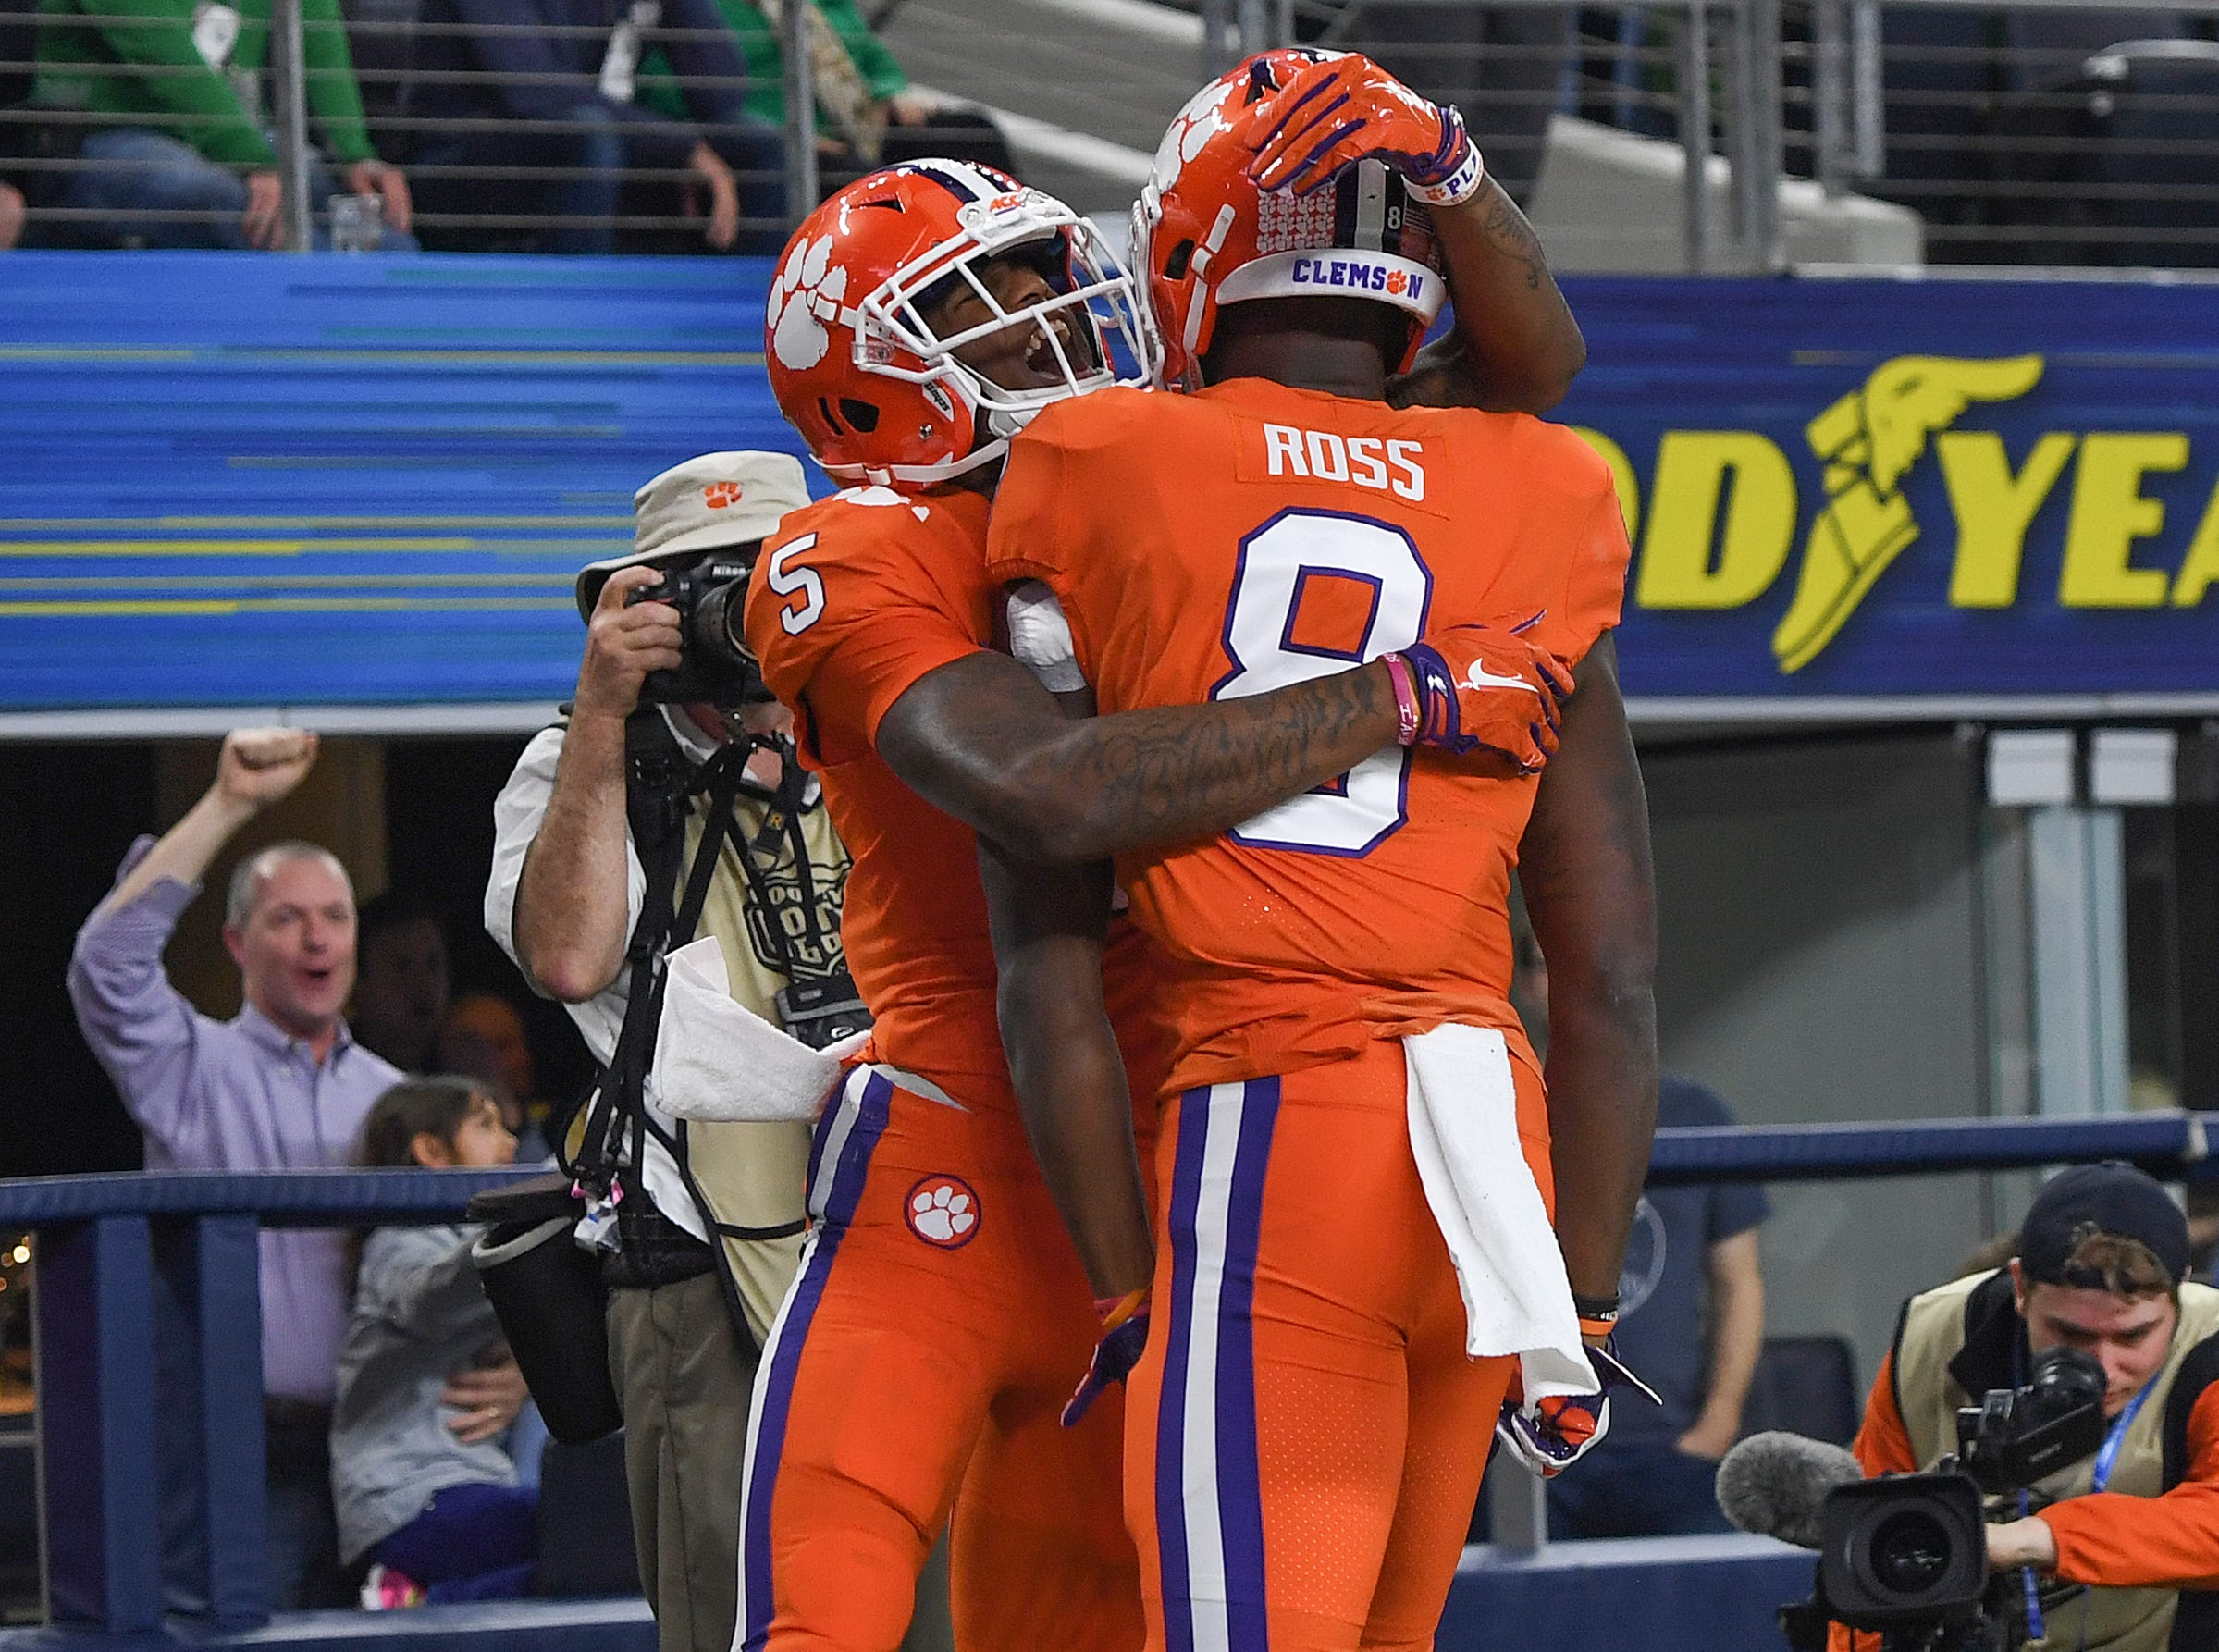 Clemson wide receiver Tee Higgins (5) hugs wide receiver Justyn Ross (8) after Ross caught a TD against Notre Dame during the 2nd quarter of the Goodyear Cotton Bowl at AT&T stadium in Arlington, TX Saturday, December 29, 2018.